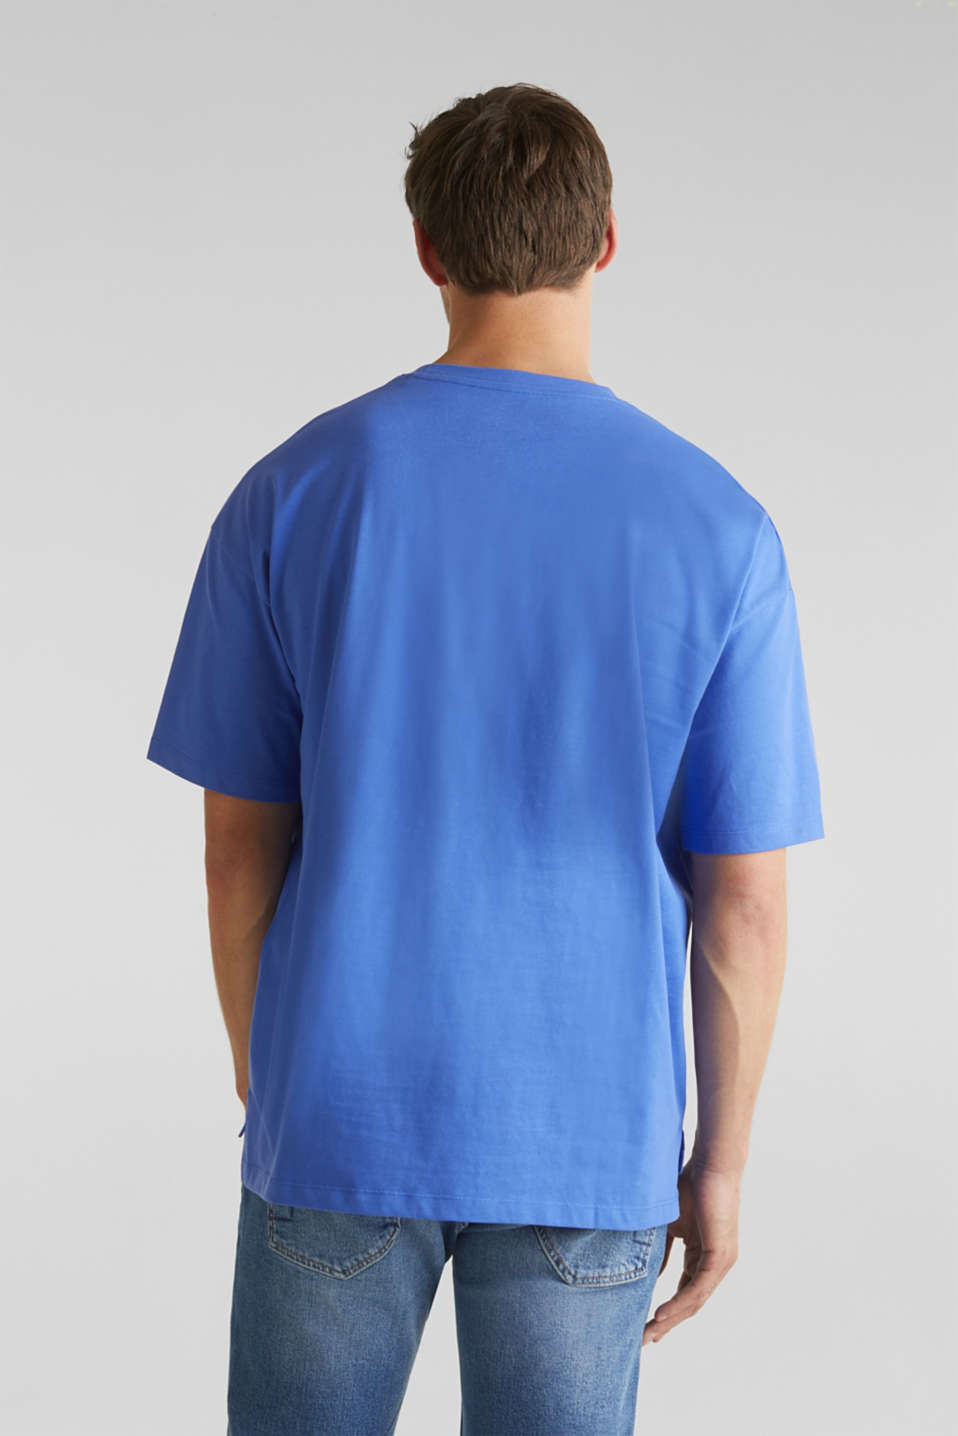 Oversized top in cotton jersey, BRIGHT BLUE, detail image number 3